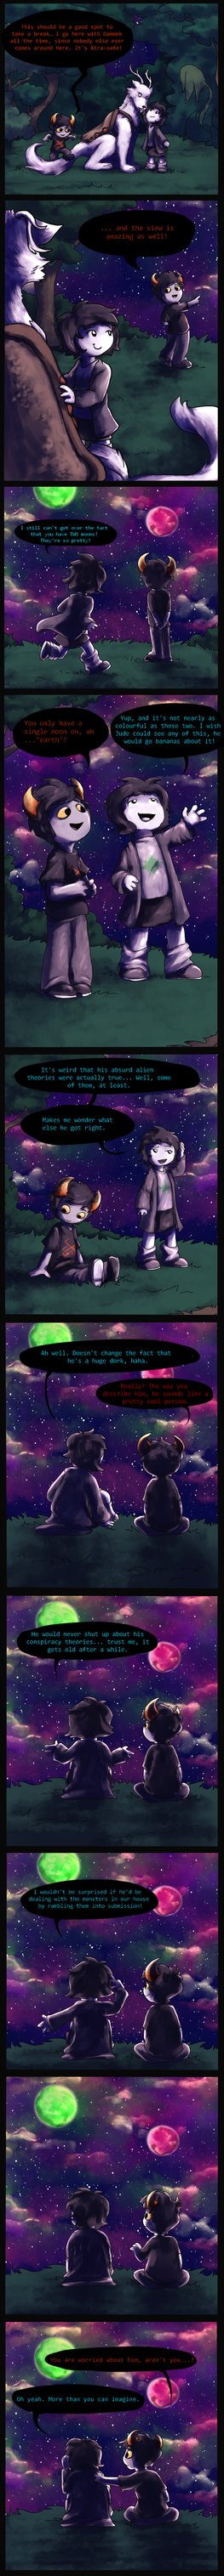 Stuck here far away from home (Hiveswap) by LadyIcepaw